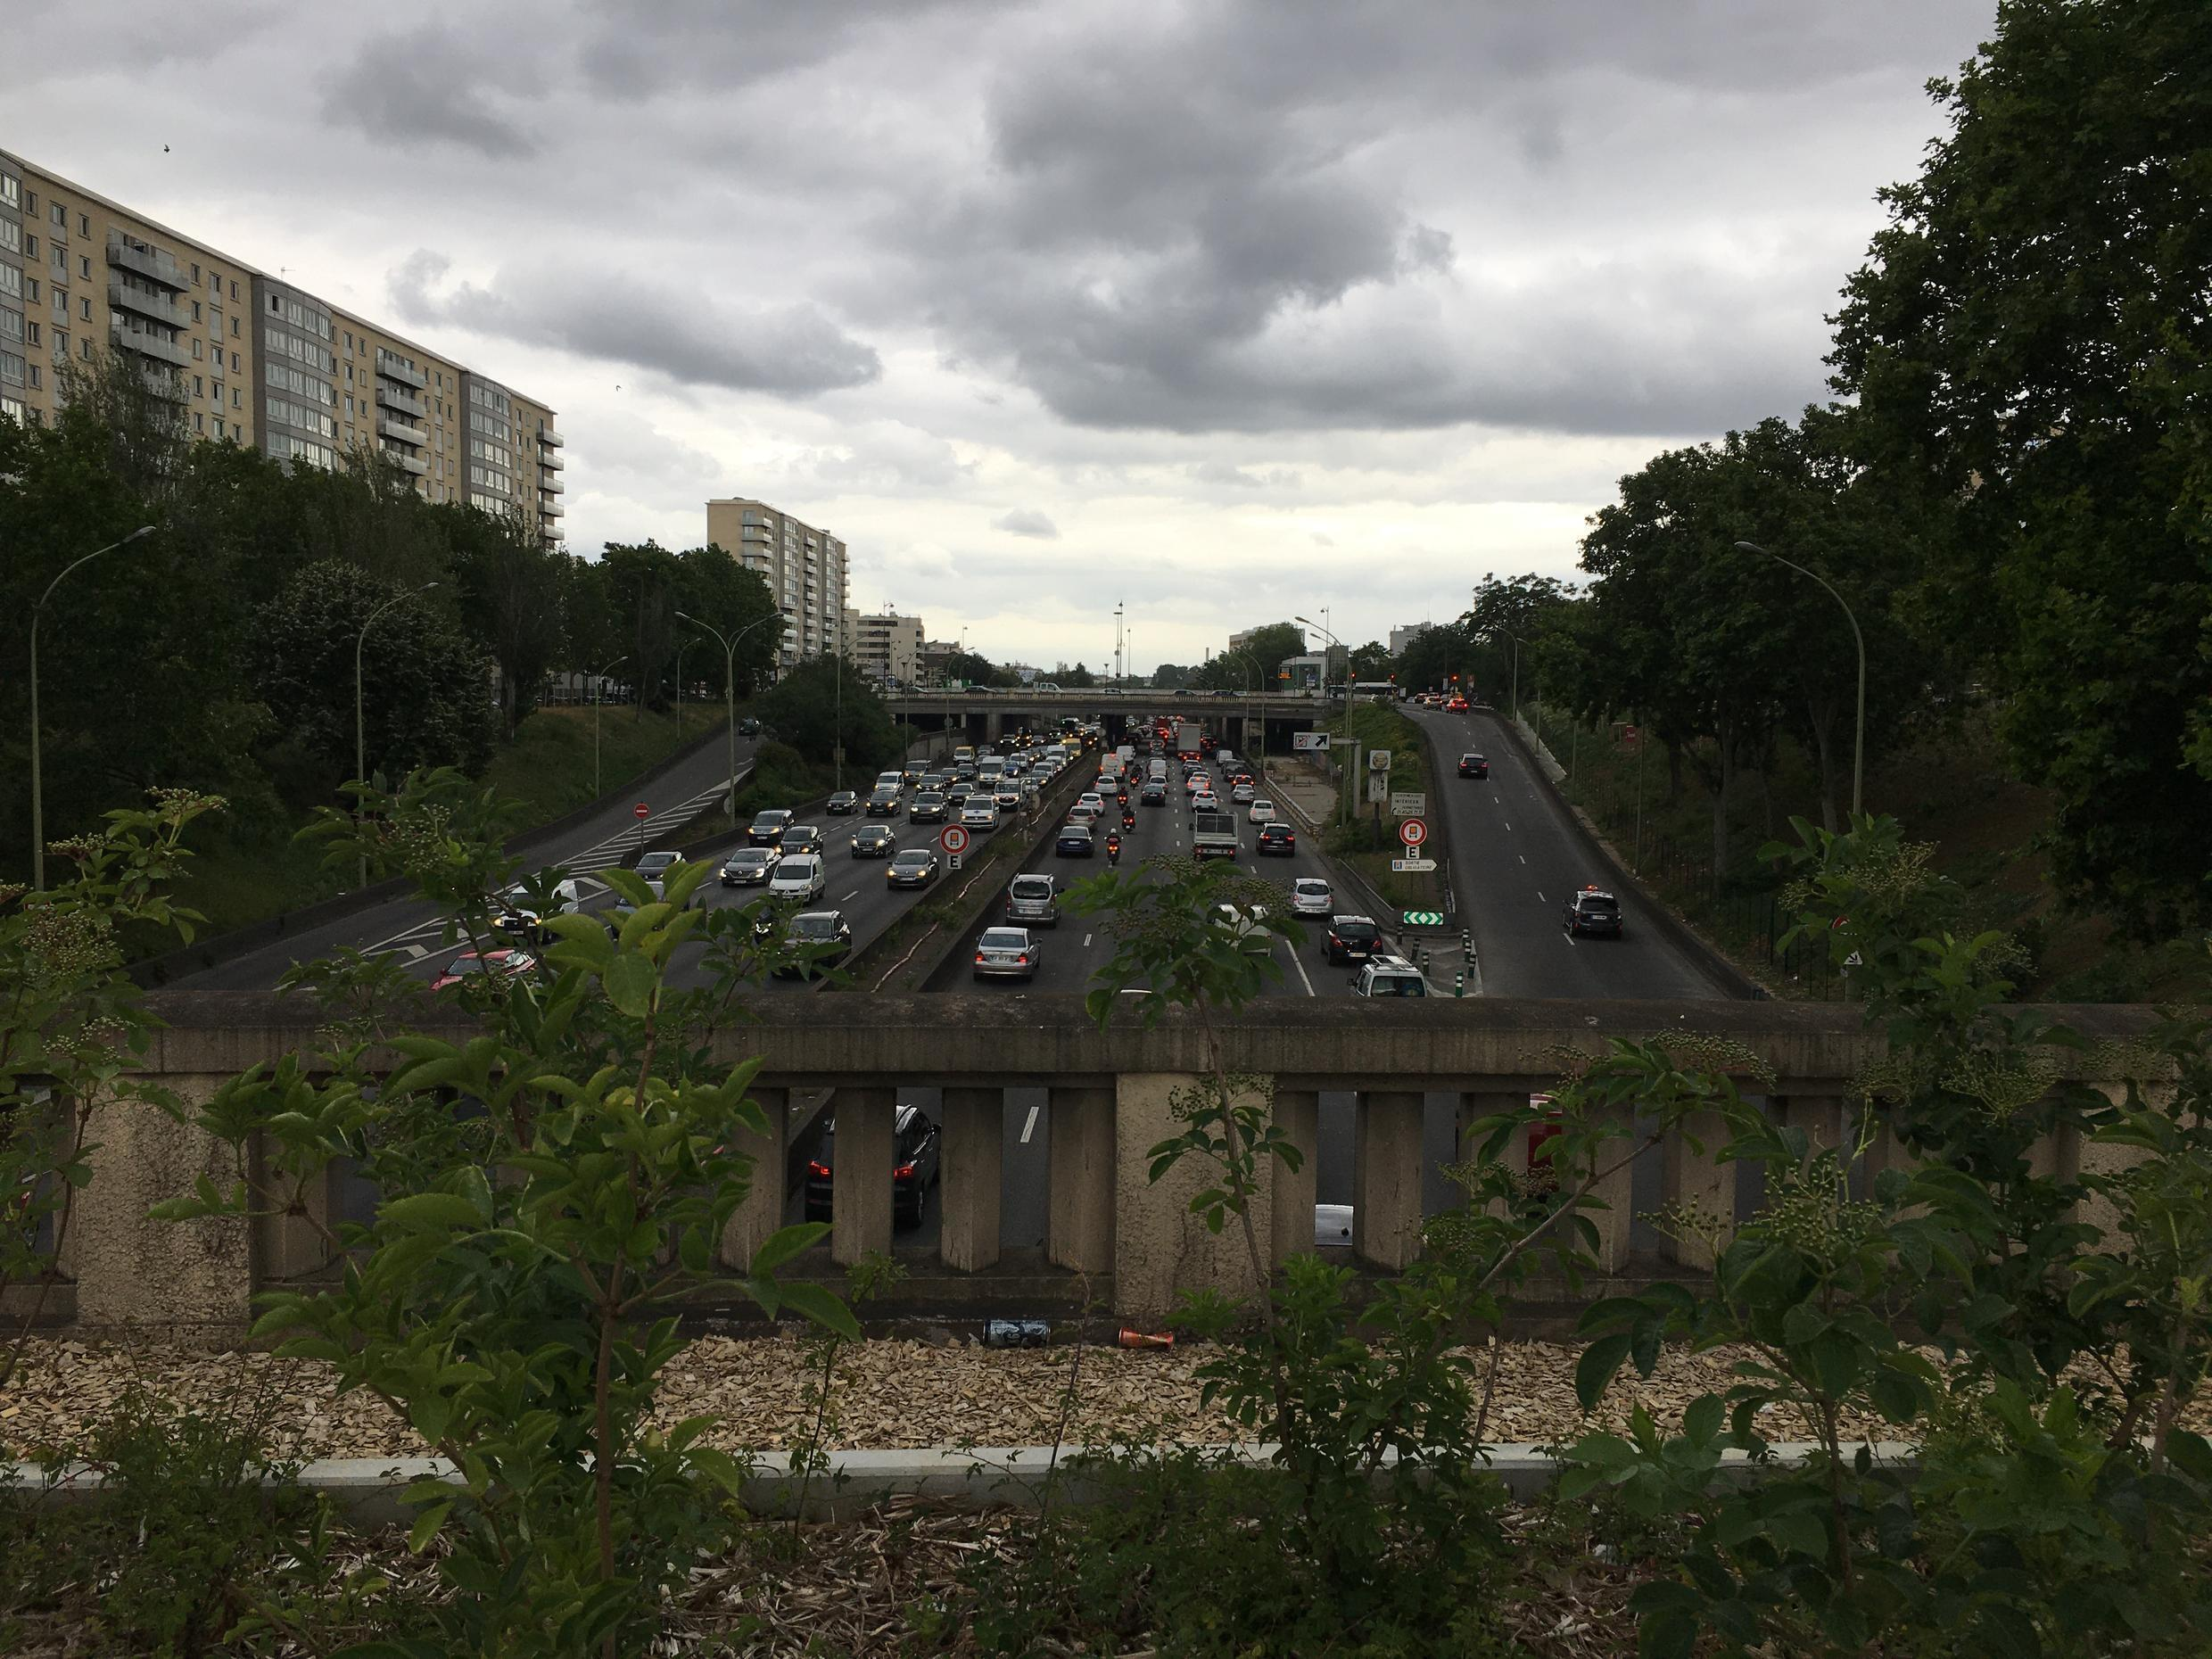 Traffic on the périphérique ring road circling Paris has returned to pre-confinement levels and brought with nearly pre-confinement levels of air pollution, according to air quality monitors in the region around the French capital.